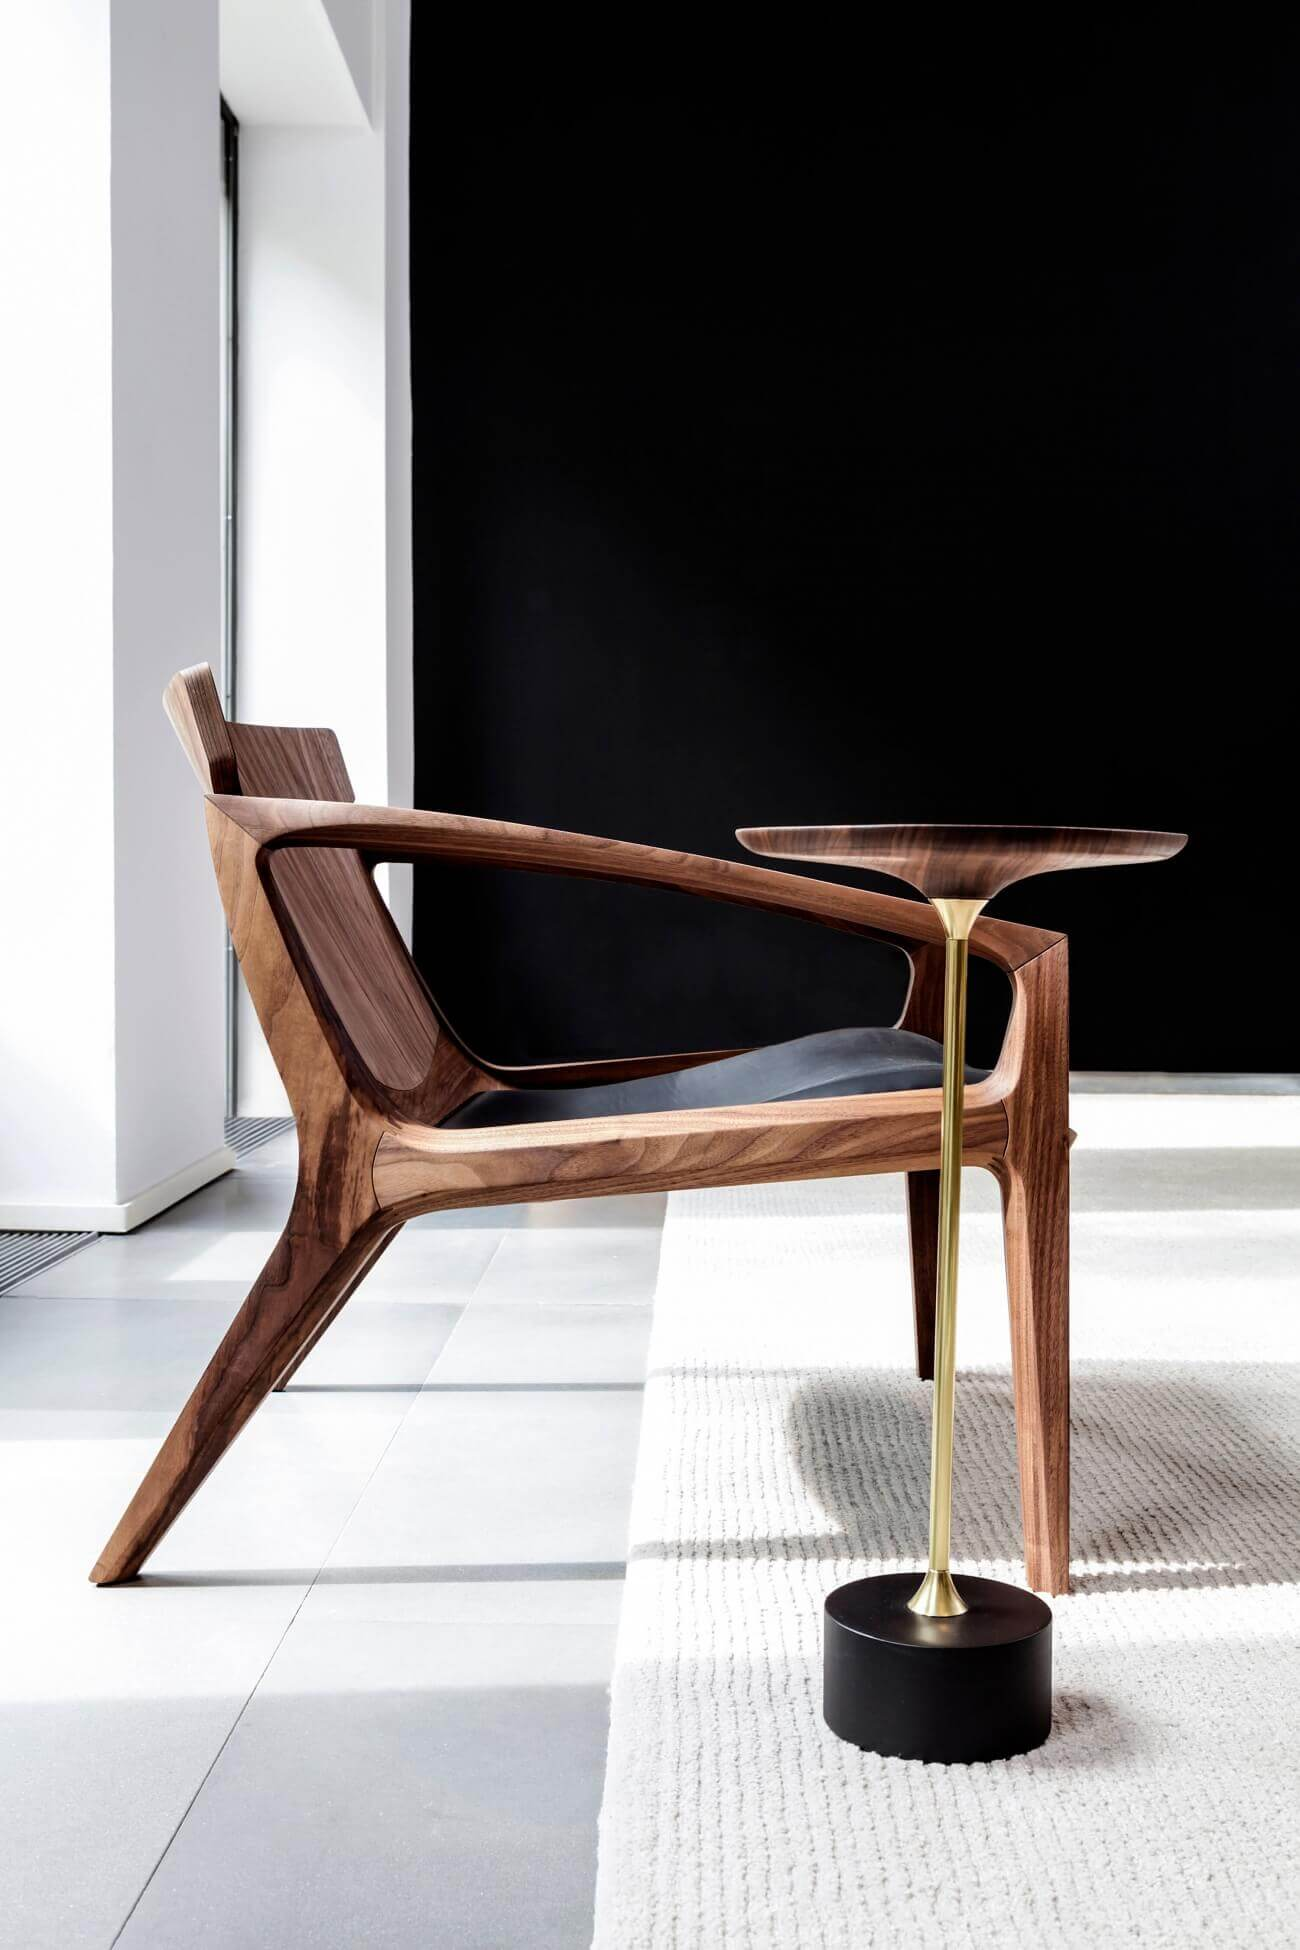 Linna Lounge Chair en Jardim Side Table van Sollos door Jader Almeida via Suite Wood